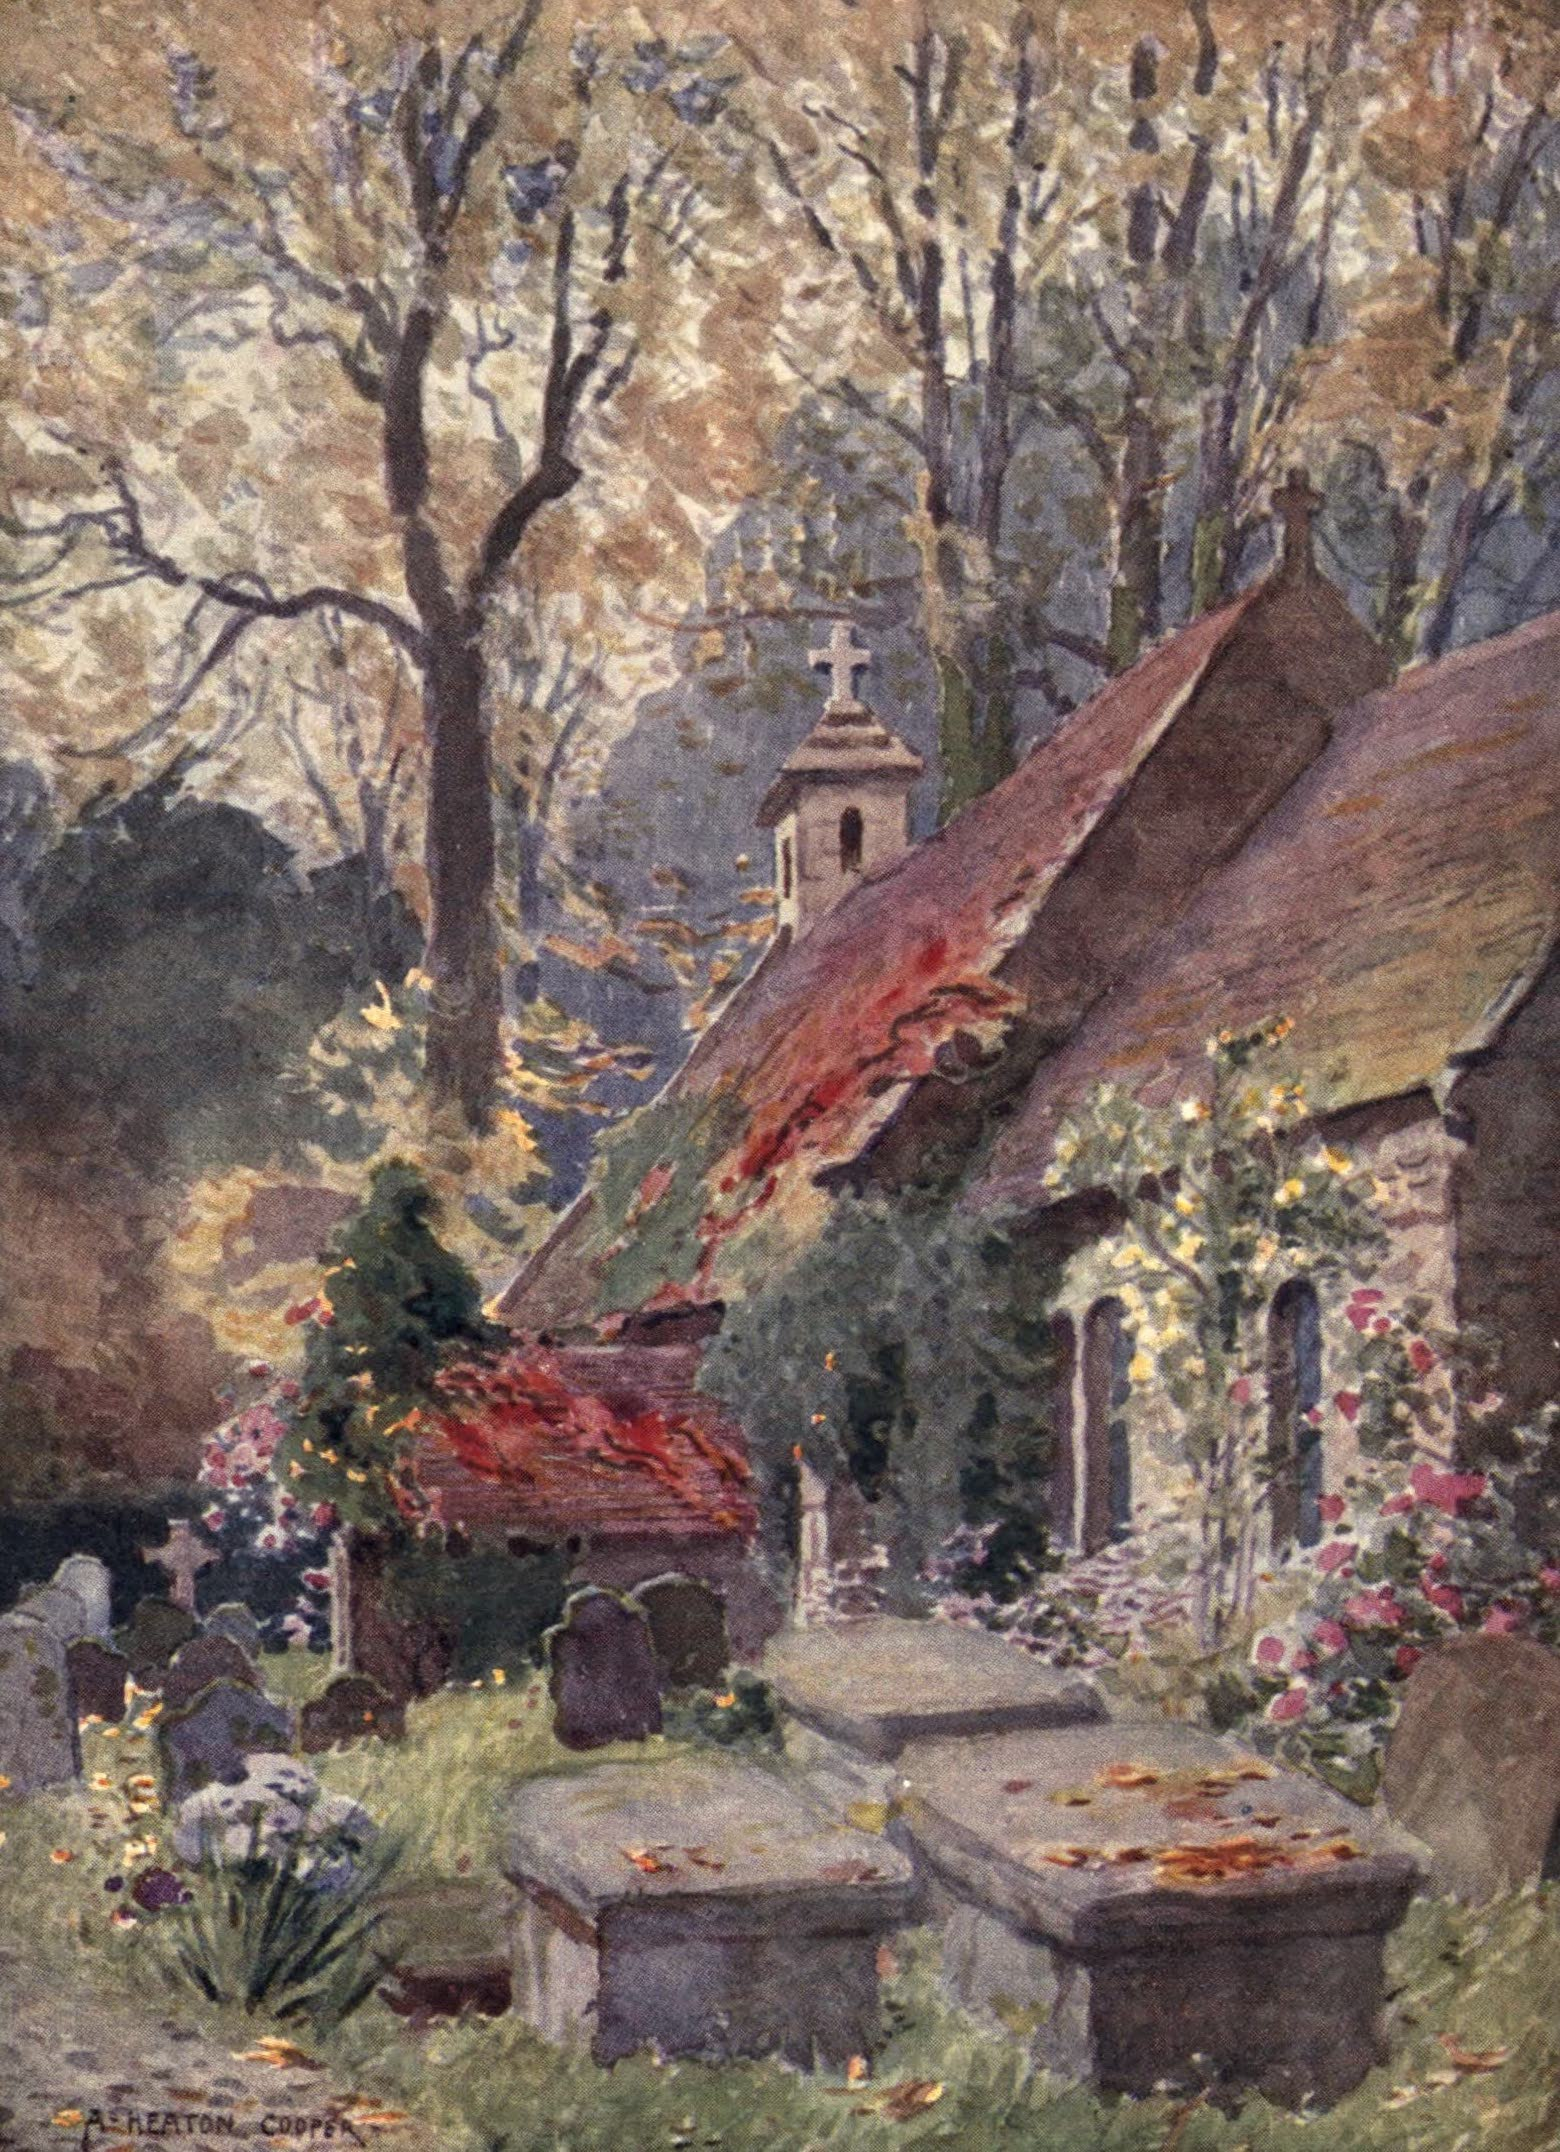 Isle of Wight Painted and Described - Bonchurch Old Church near Ventnor (1908)